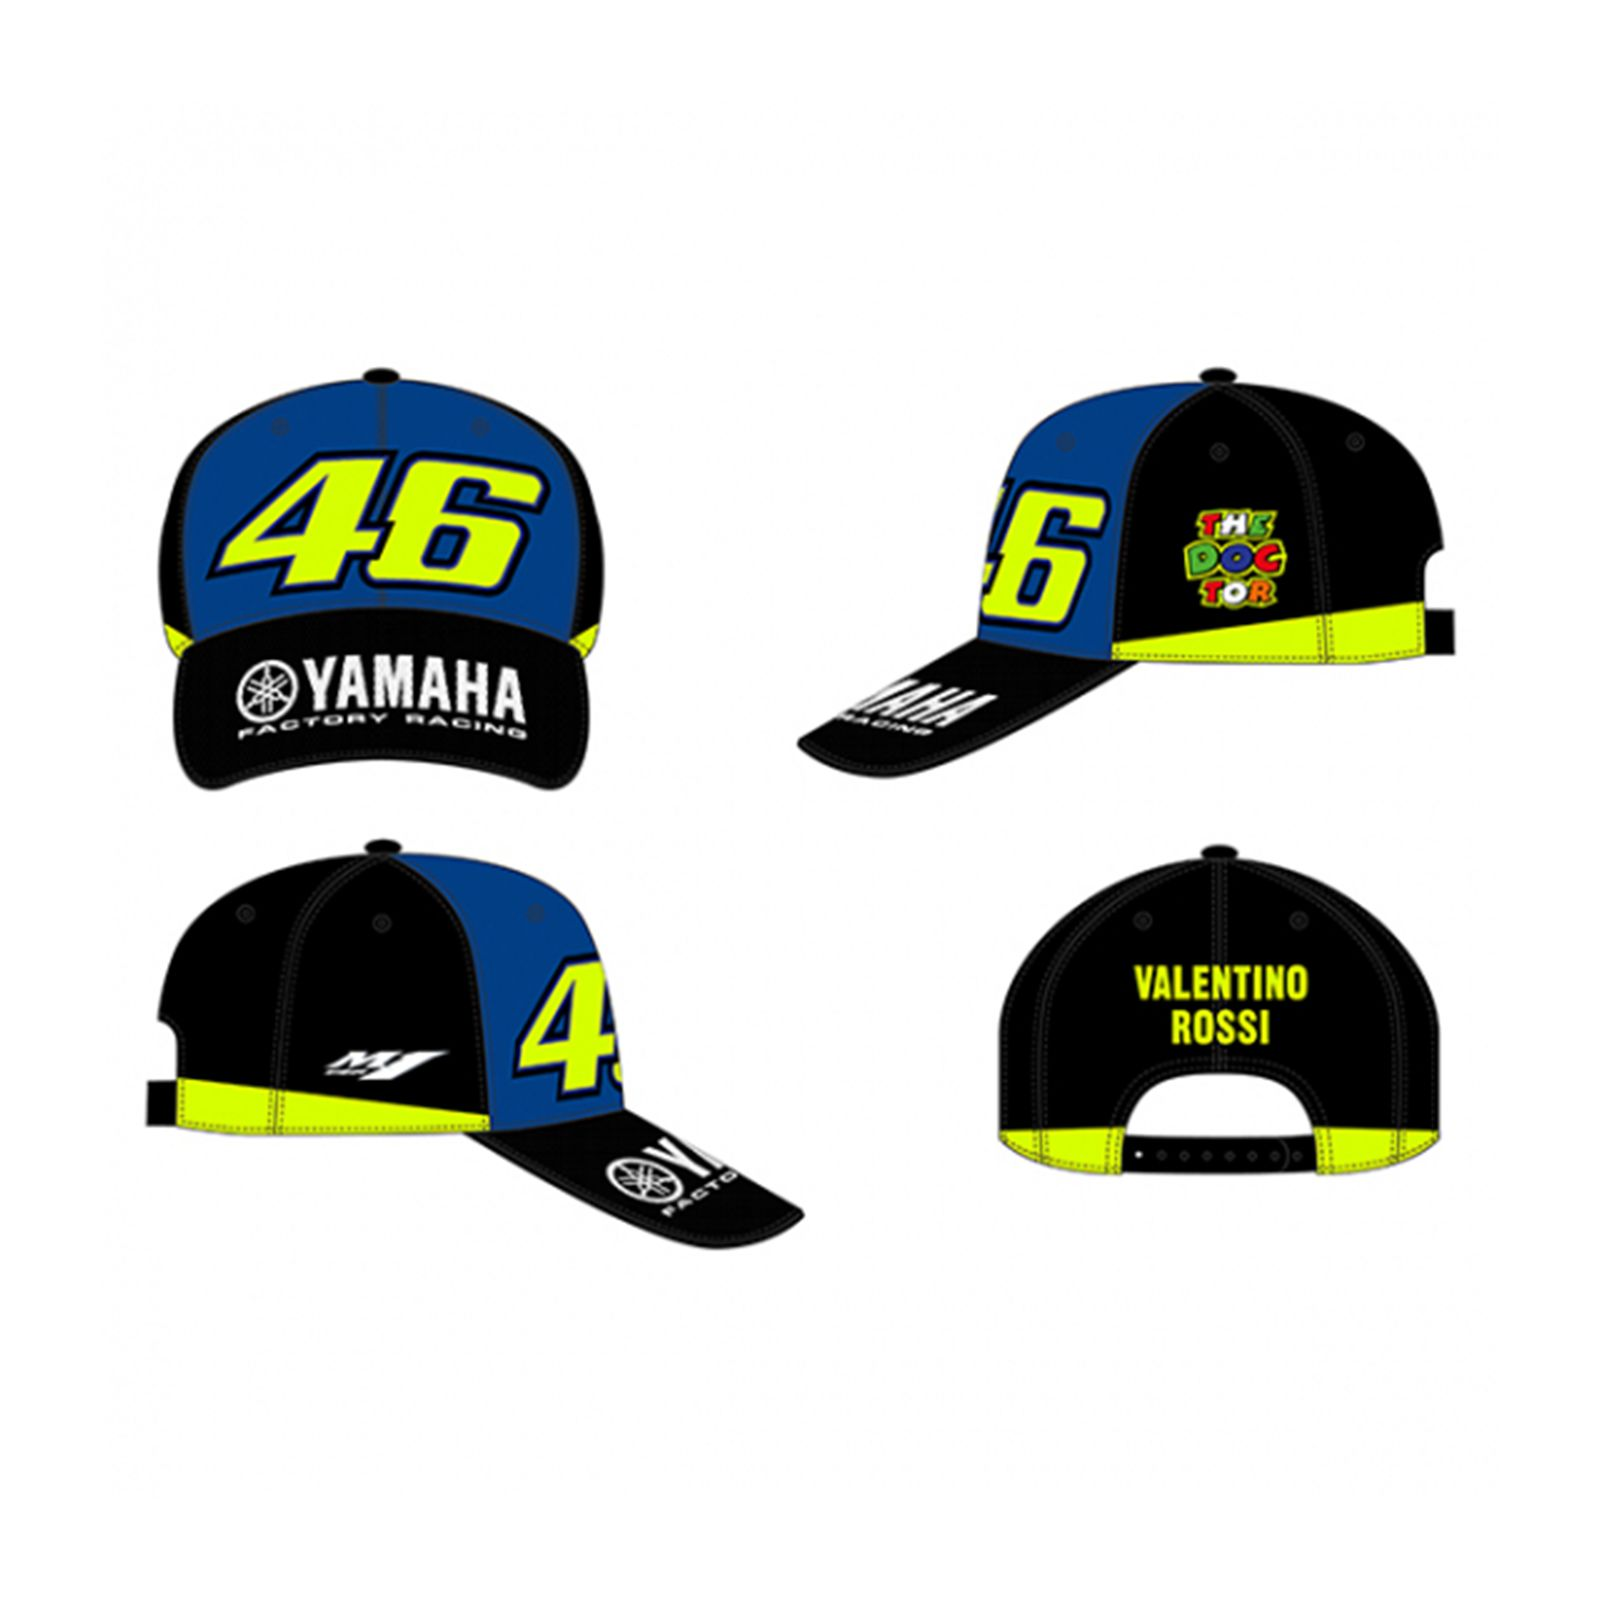 ac2ab1202 Details about VR46 Valentino Rossi 46 Yamaha Adjustable Cap - Racing Blue  Royal